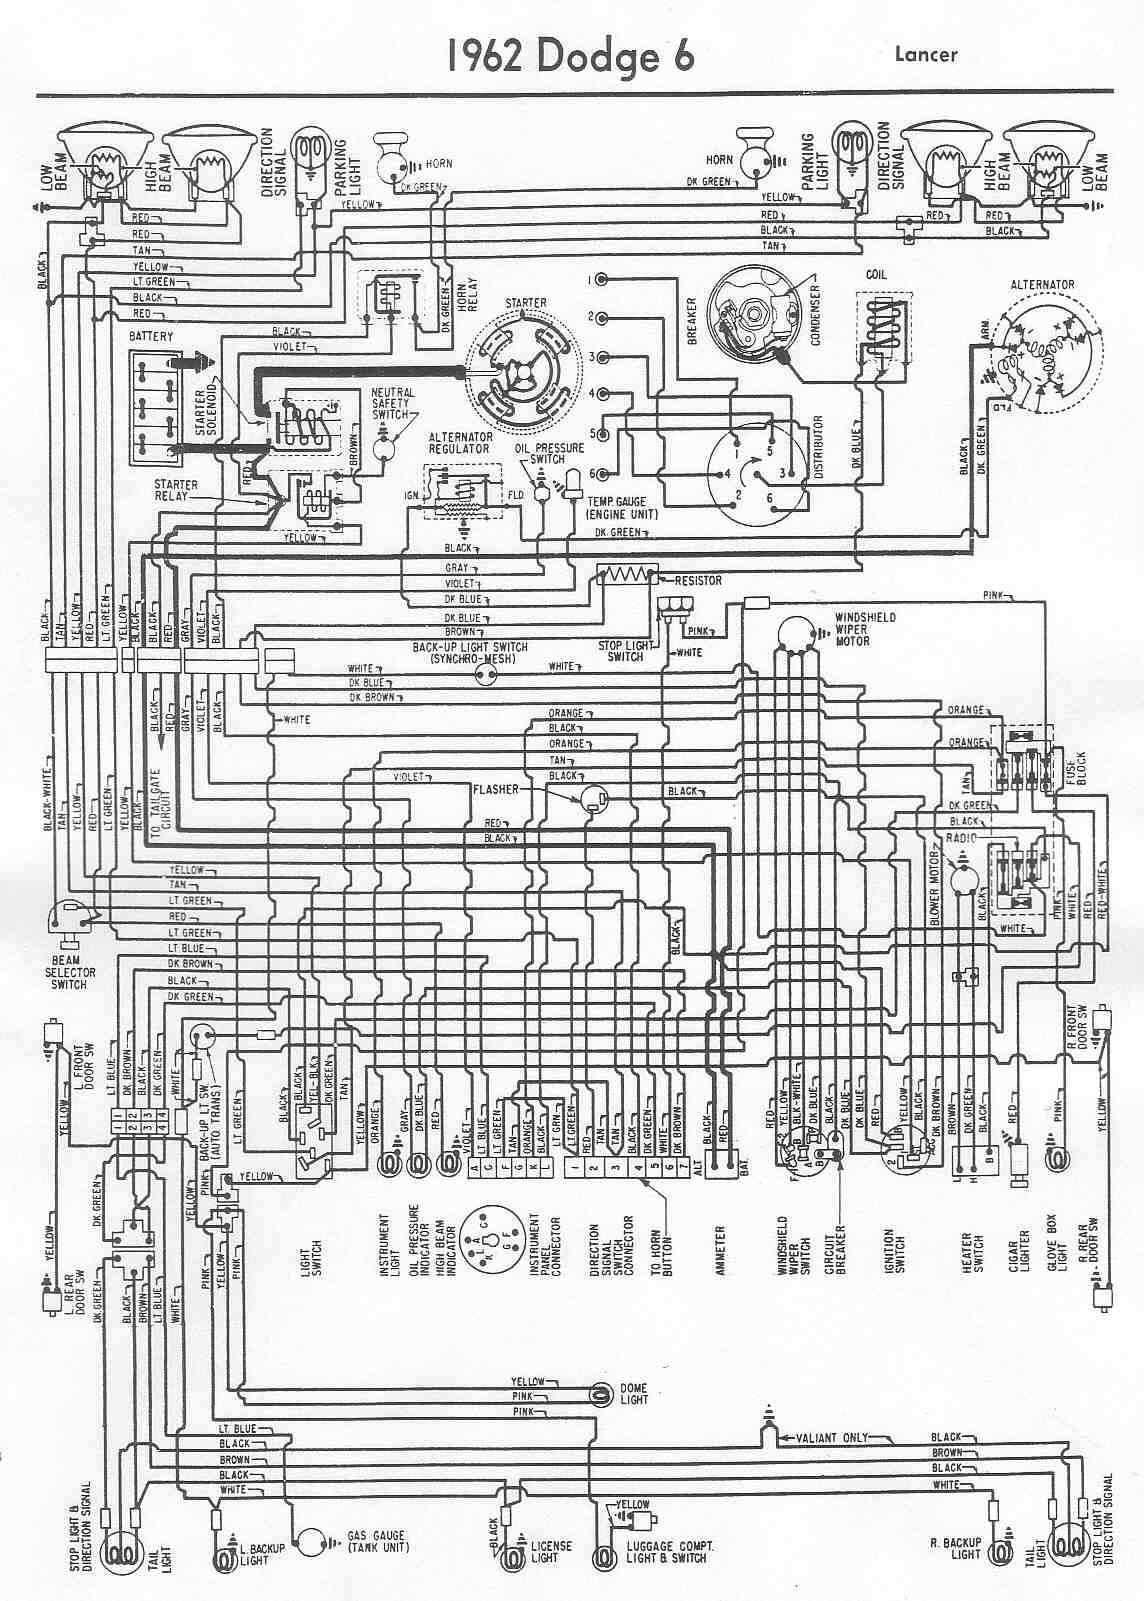 67 dodge charger wiring diagram wiring library 1968 ford falcon wiring diagram 1968 dodge challenger wiring diagram [ 1144 x 1601 Pixel ]